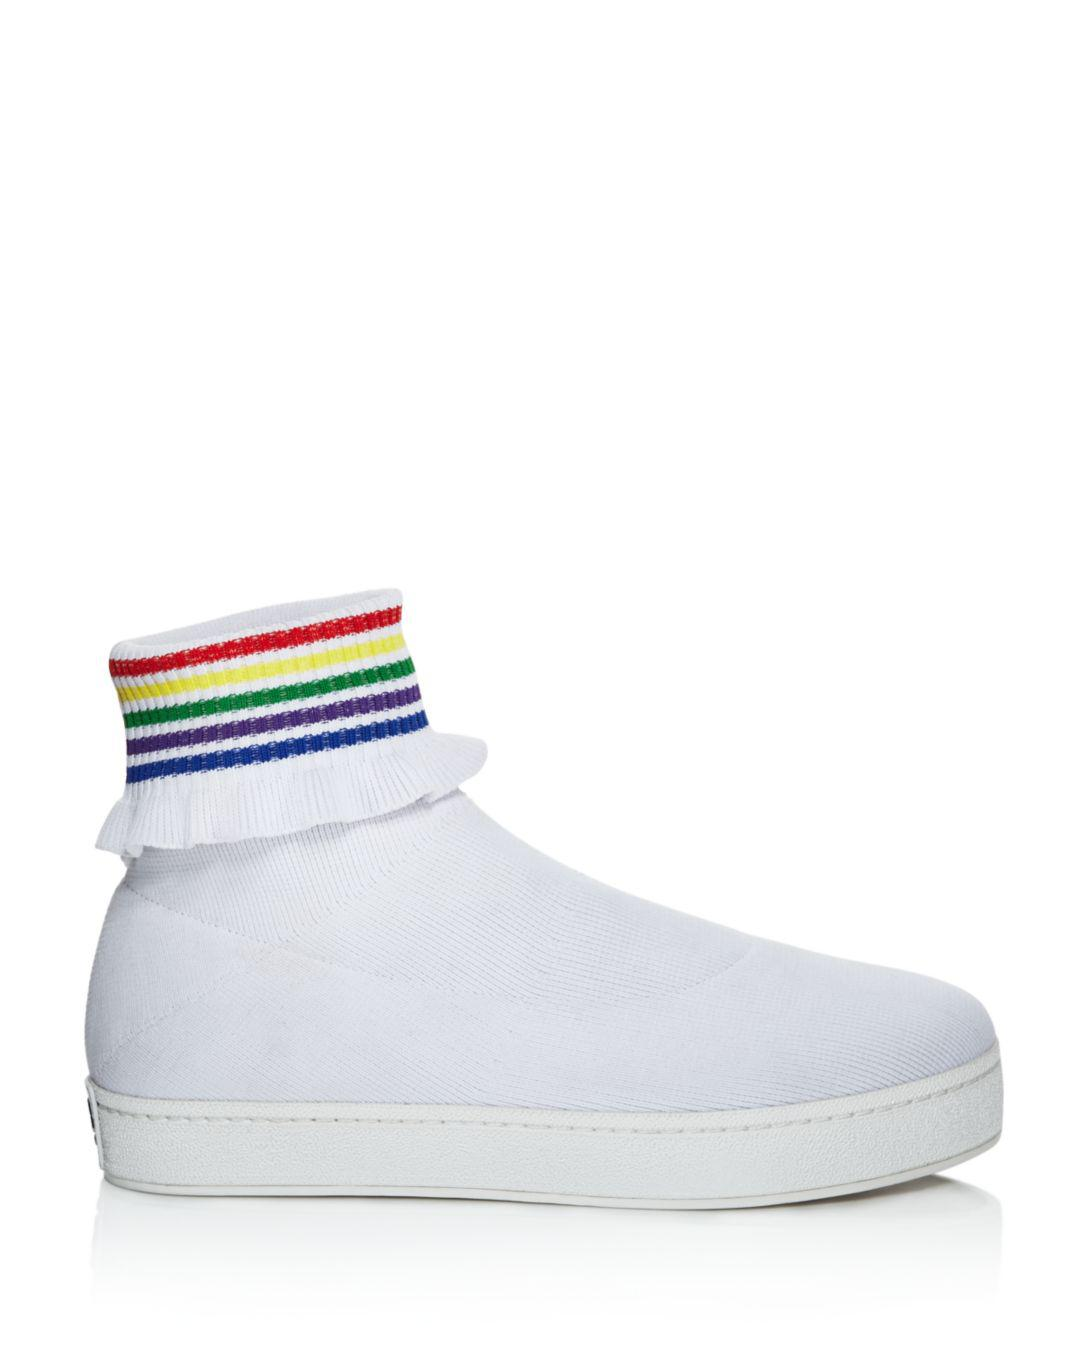 22e72a75dfea Lyst - Opening Ceremony Women s Bobby Ruffled Sock Slip-on Sneakers in White